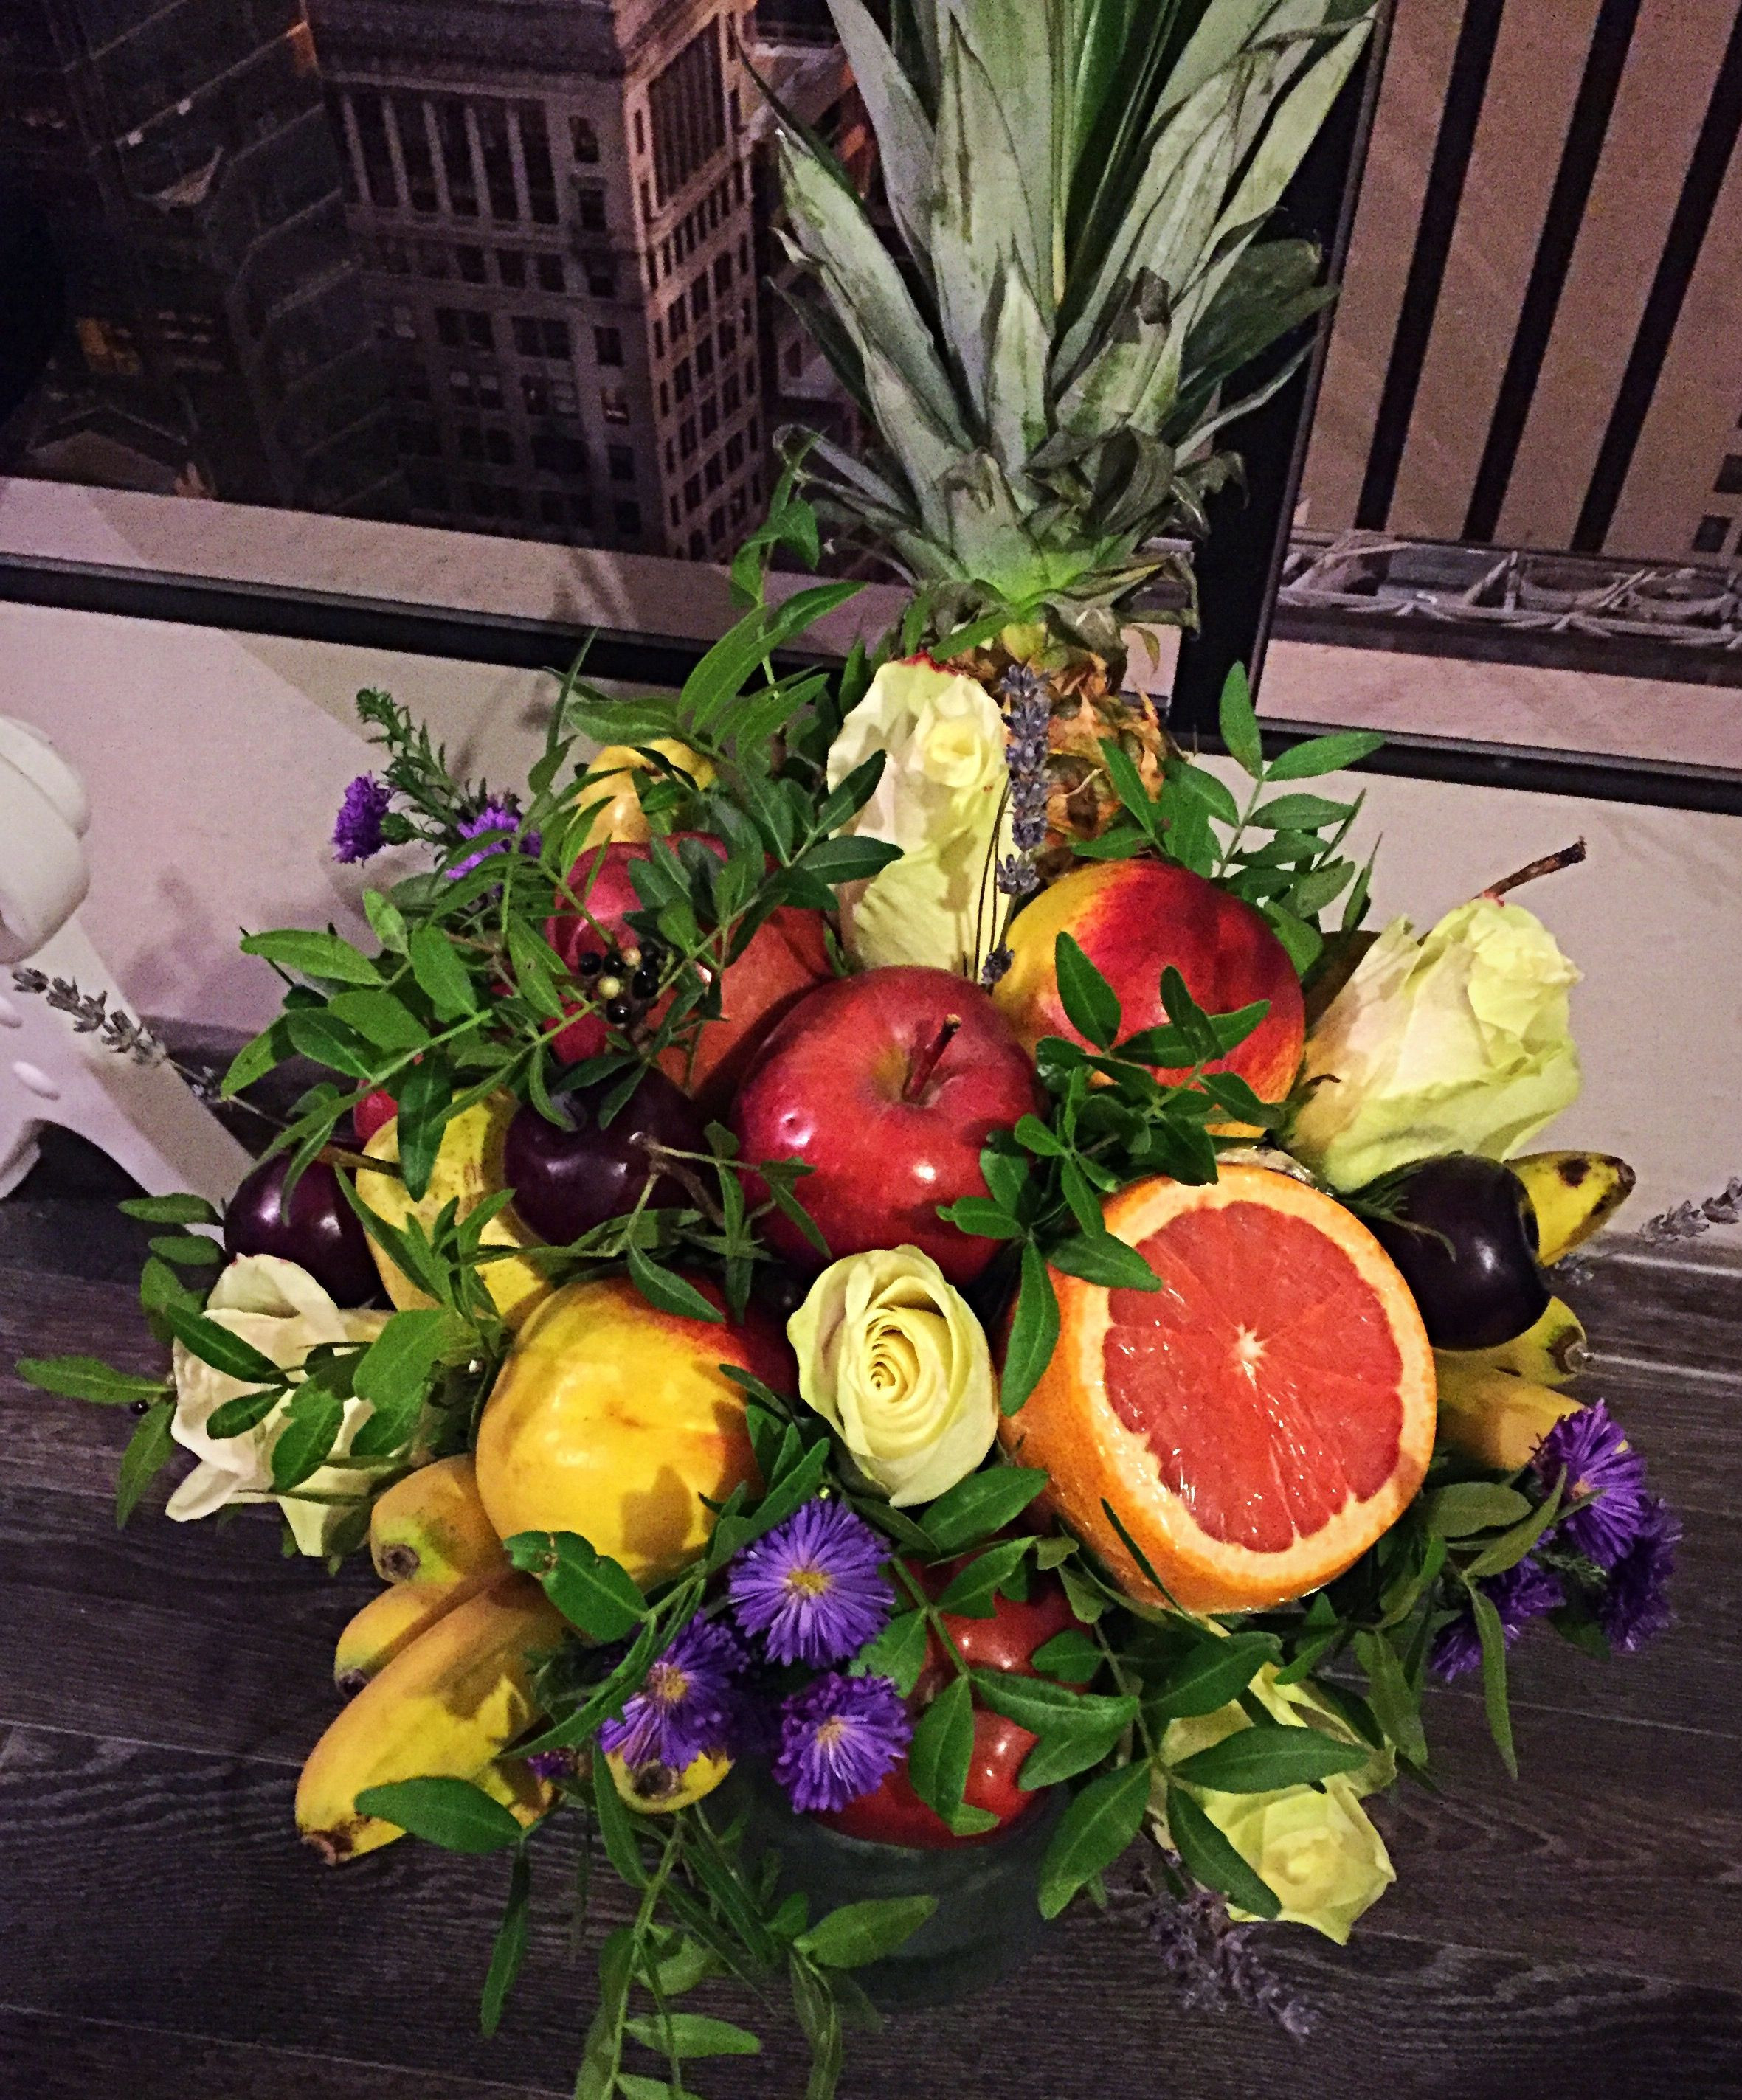 Starting from fiance birthday to wedding ceremony Bouquet is usually made of the arrangement of several types of beautiful flowers